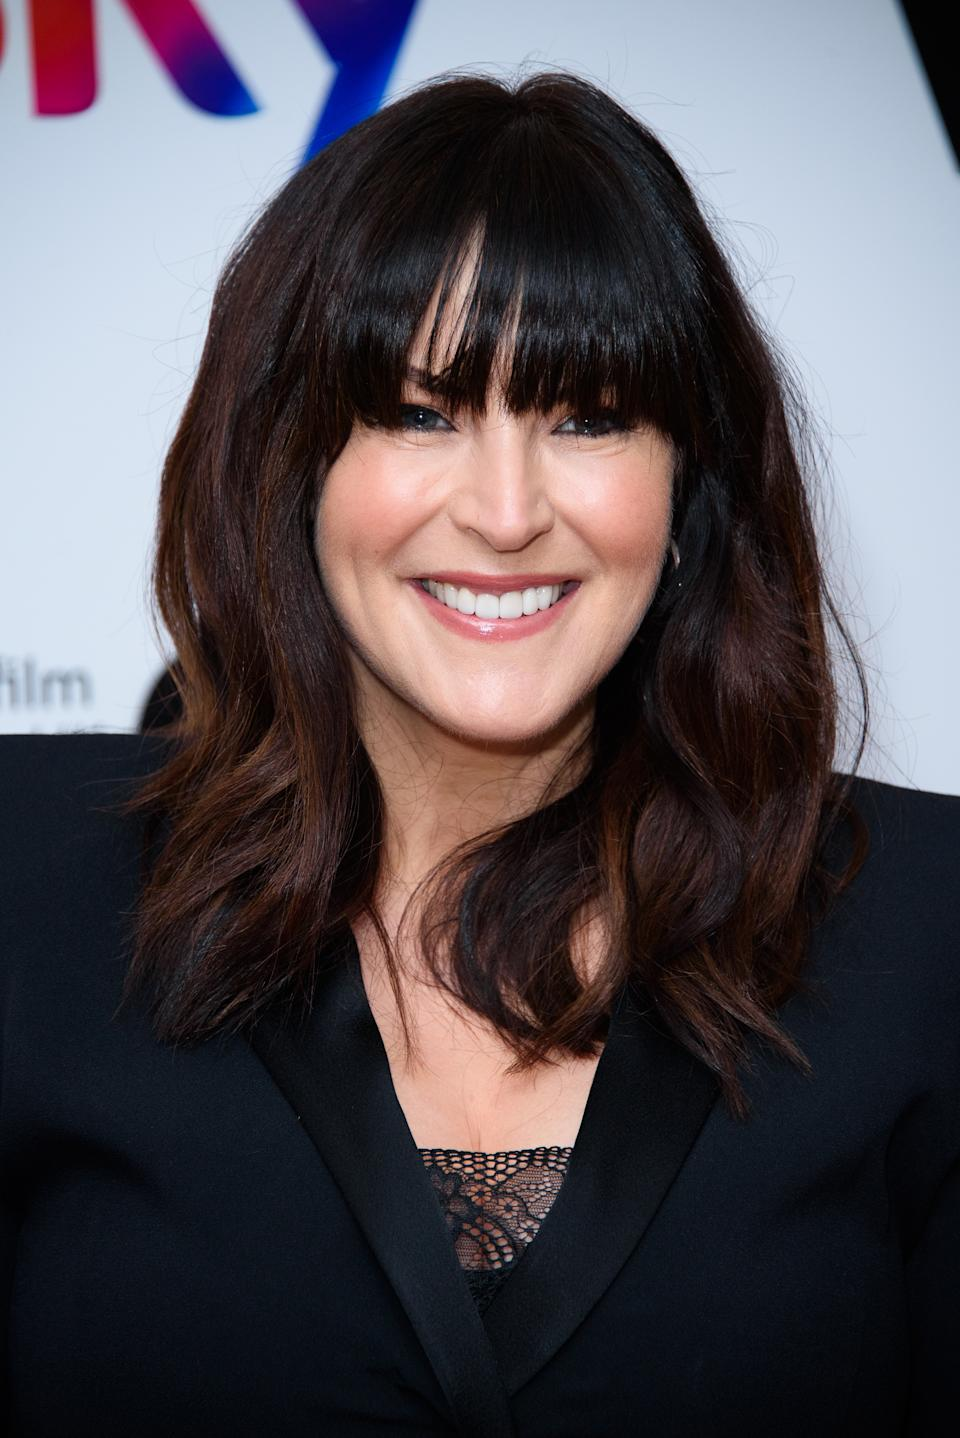 LONDON, ENGLAND - DECEMBER 06: Anna Richardson during the Women in Film & TV Awards 2019 at Hilton Park Lane on December 06, 2019 in London, England. (Photo by Joe Maher/Getty Images)